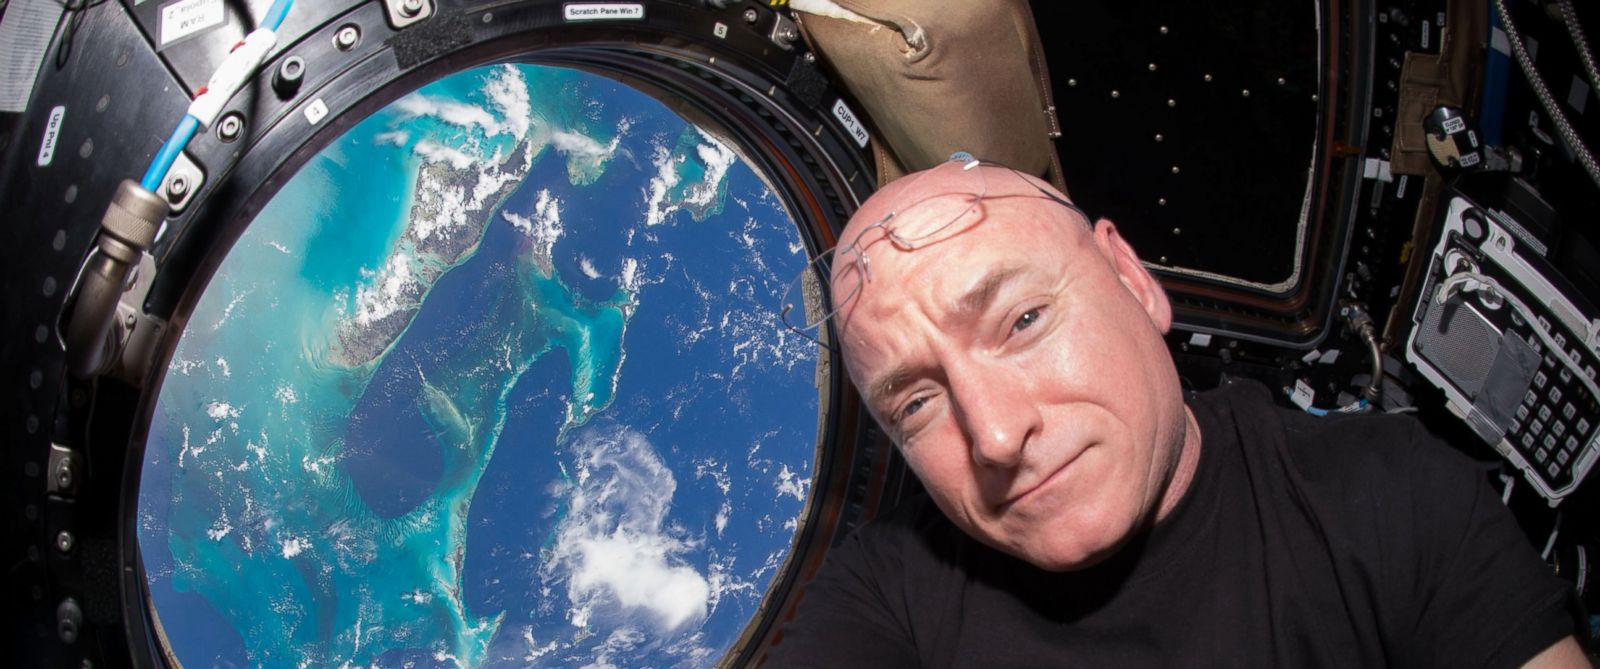 PHOTO: Expedition 44 flight engineer and NASA astronaut Scott Kelly seen inside the Cupola, a special module which provides a 360-degree viewing of the Earth and the International Space Station.